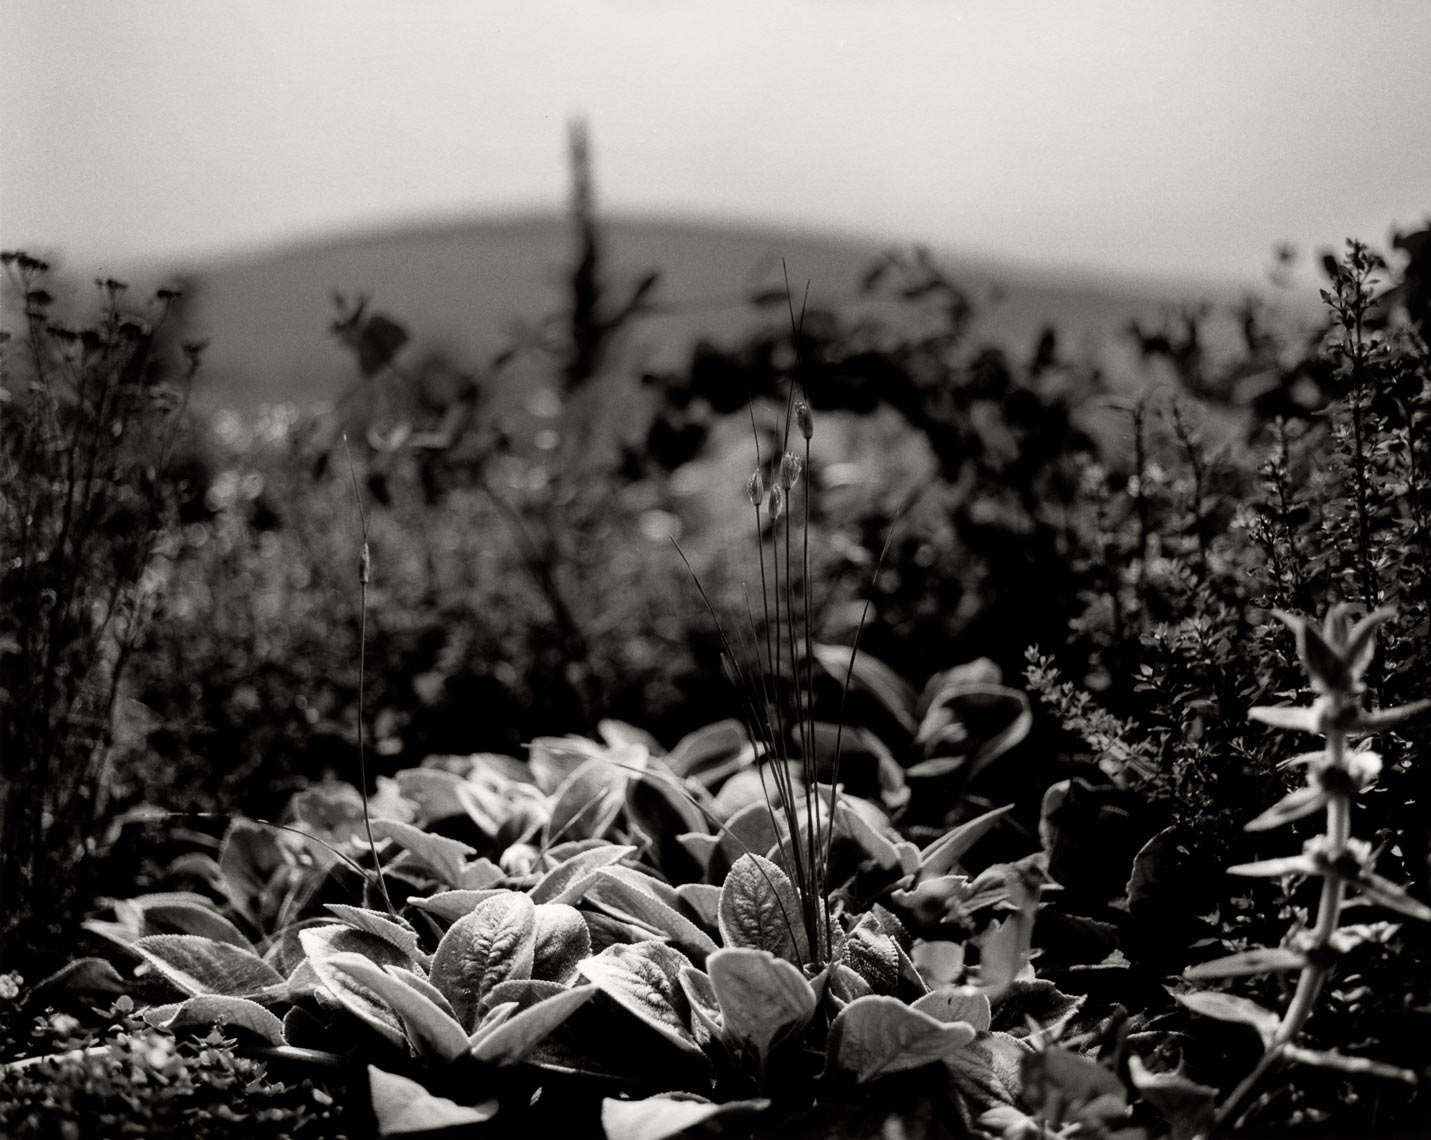 David Lebe; Lambs Ears Phudd Hill, 1997, garden black and white photograph